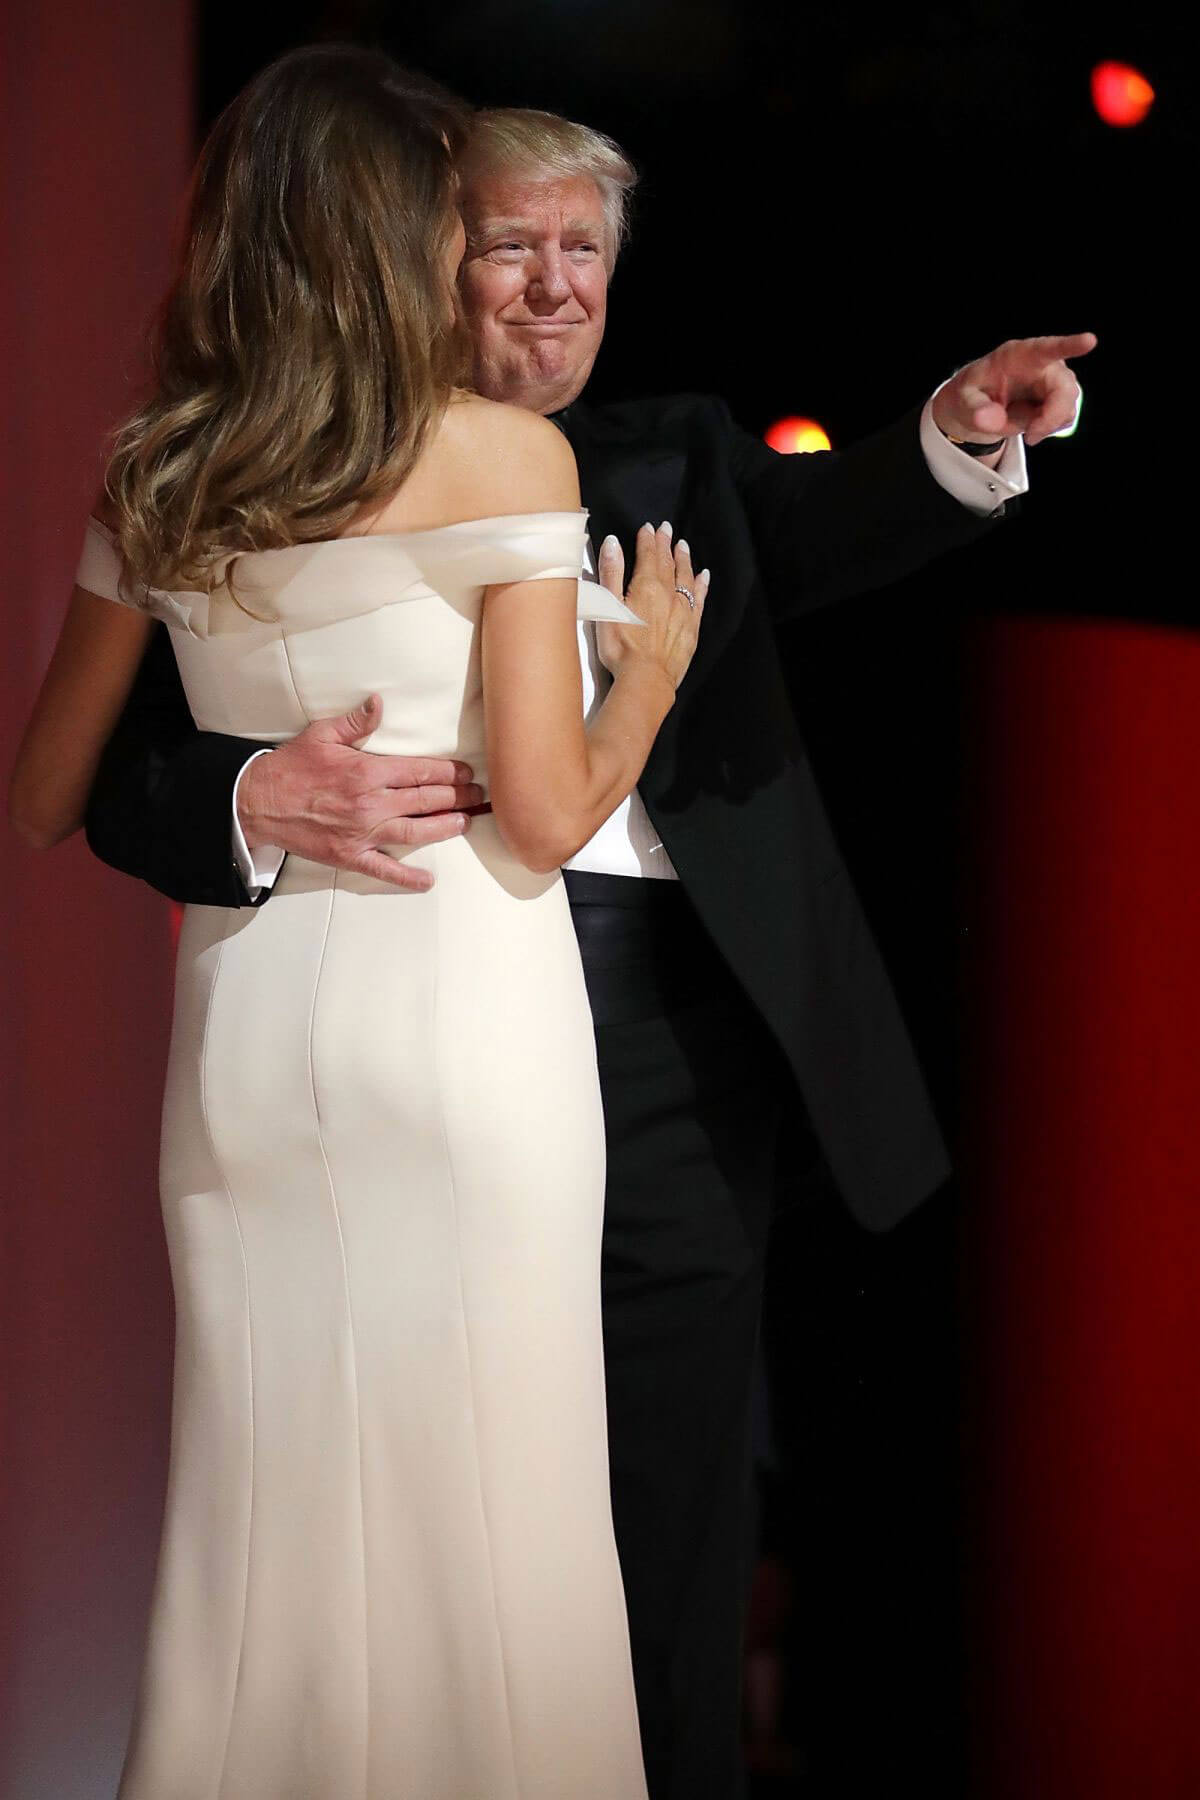 Melania and Donald Trump at Inauguration Ball at National Building Museum in Washington